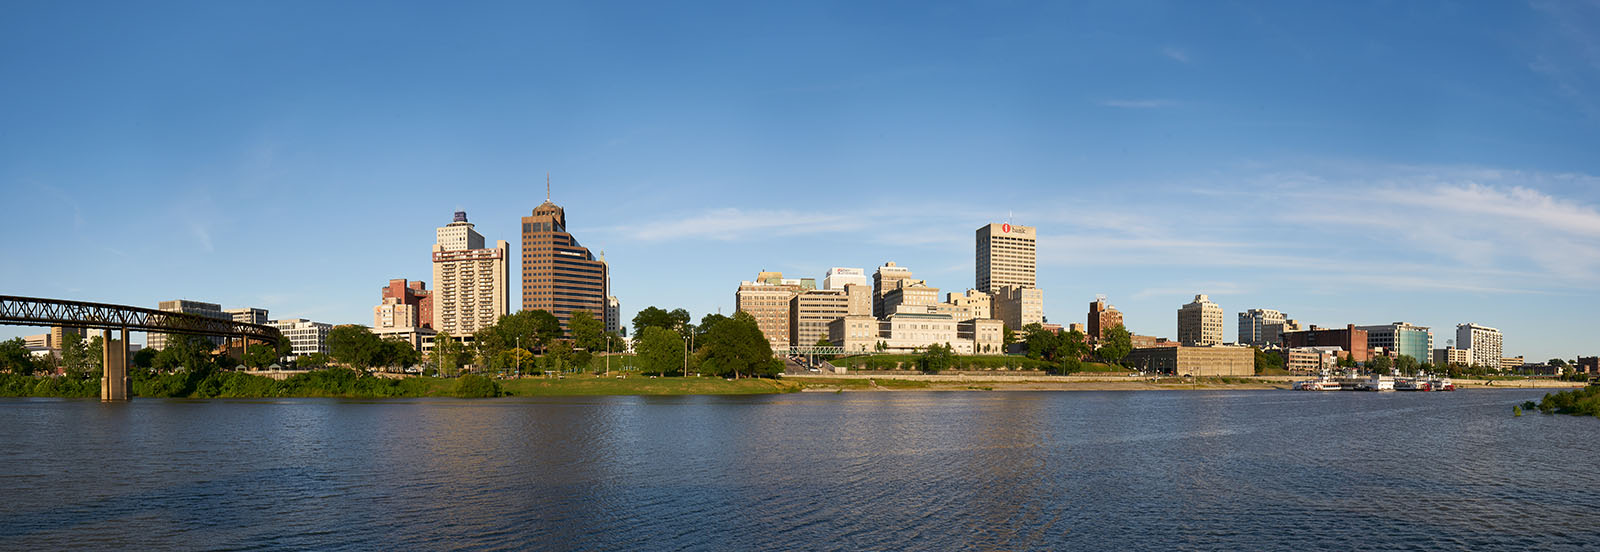 Downtown Memphis buildings landscape